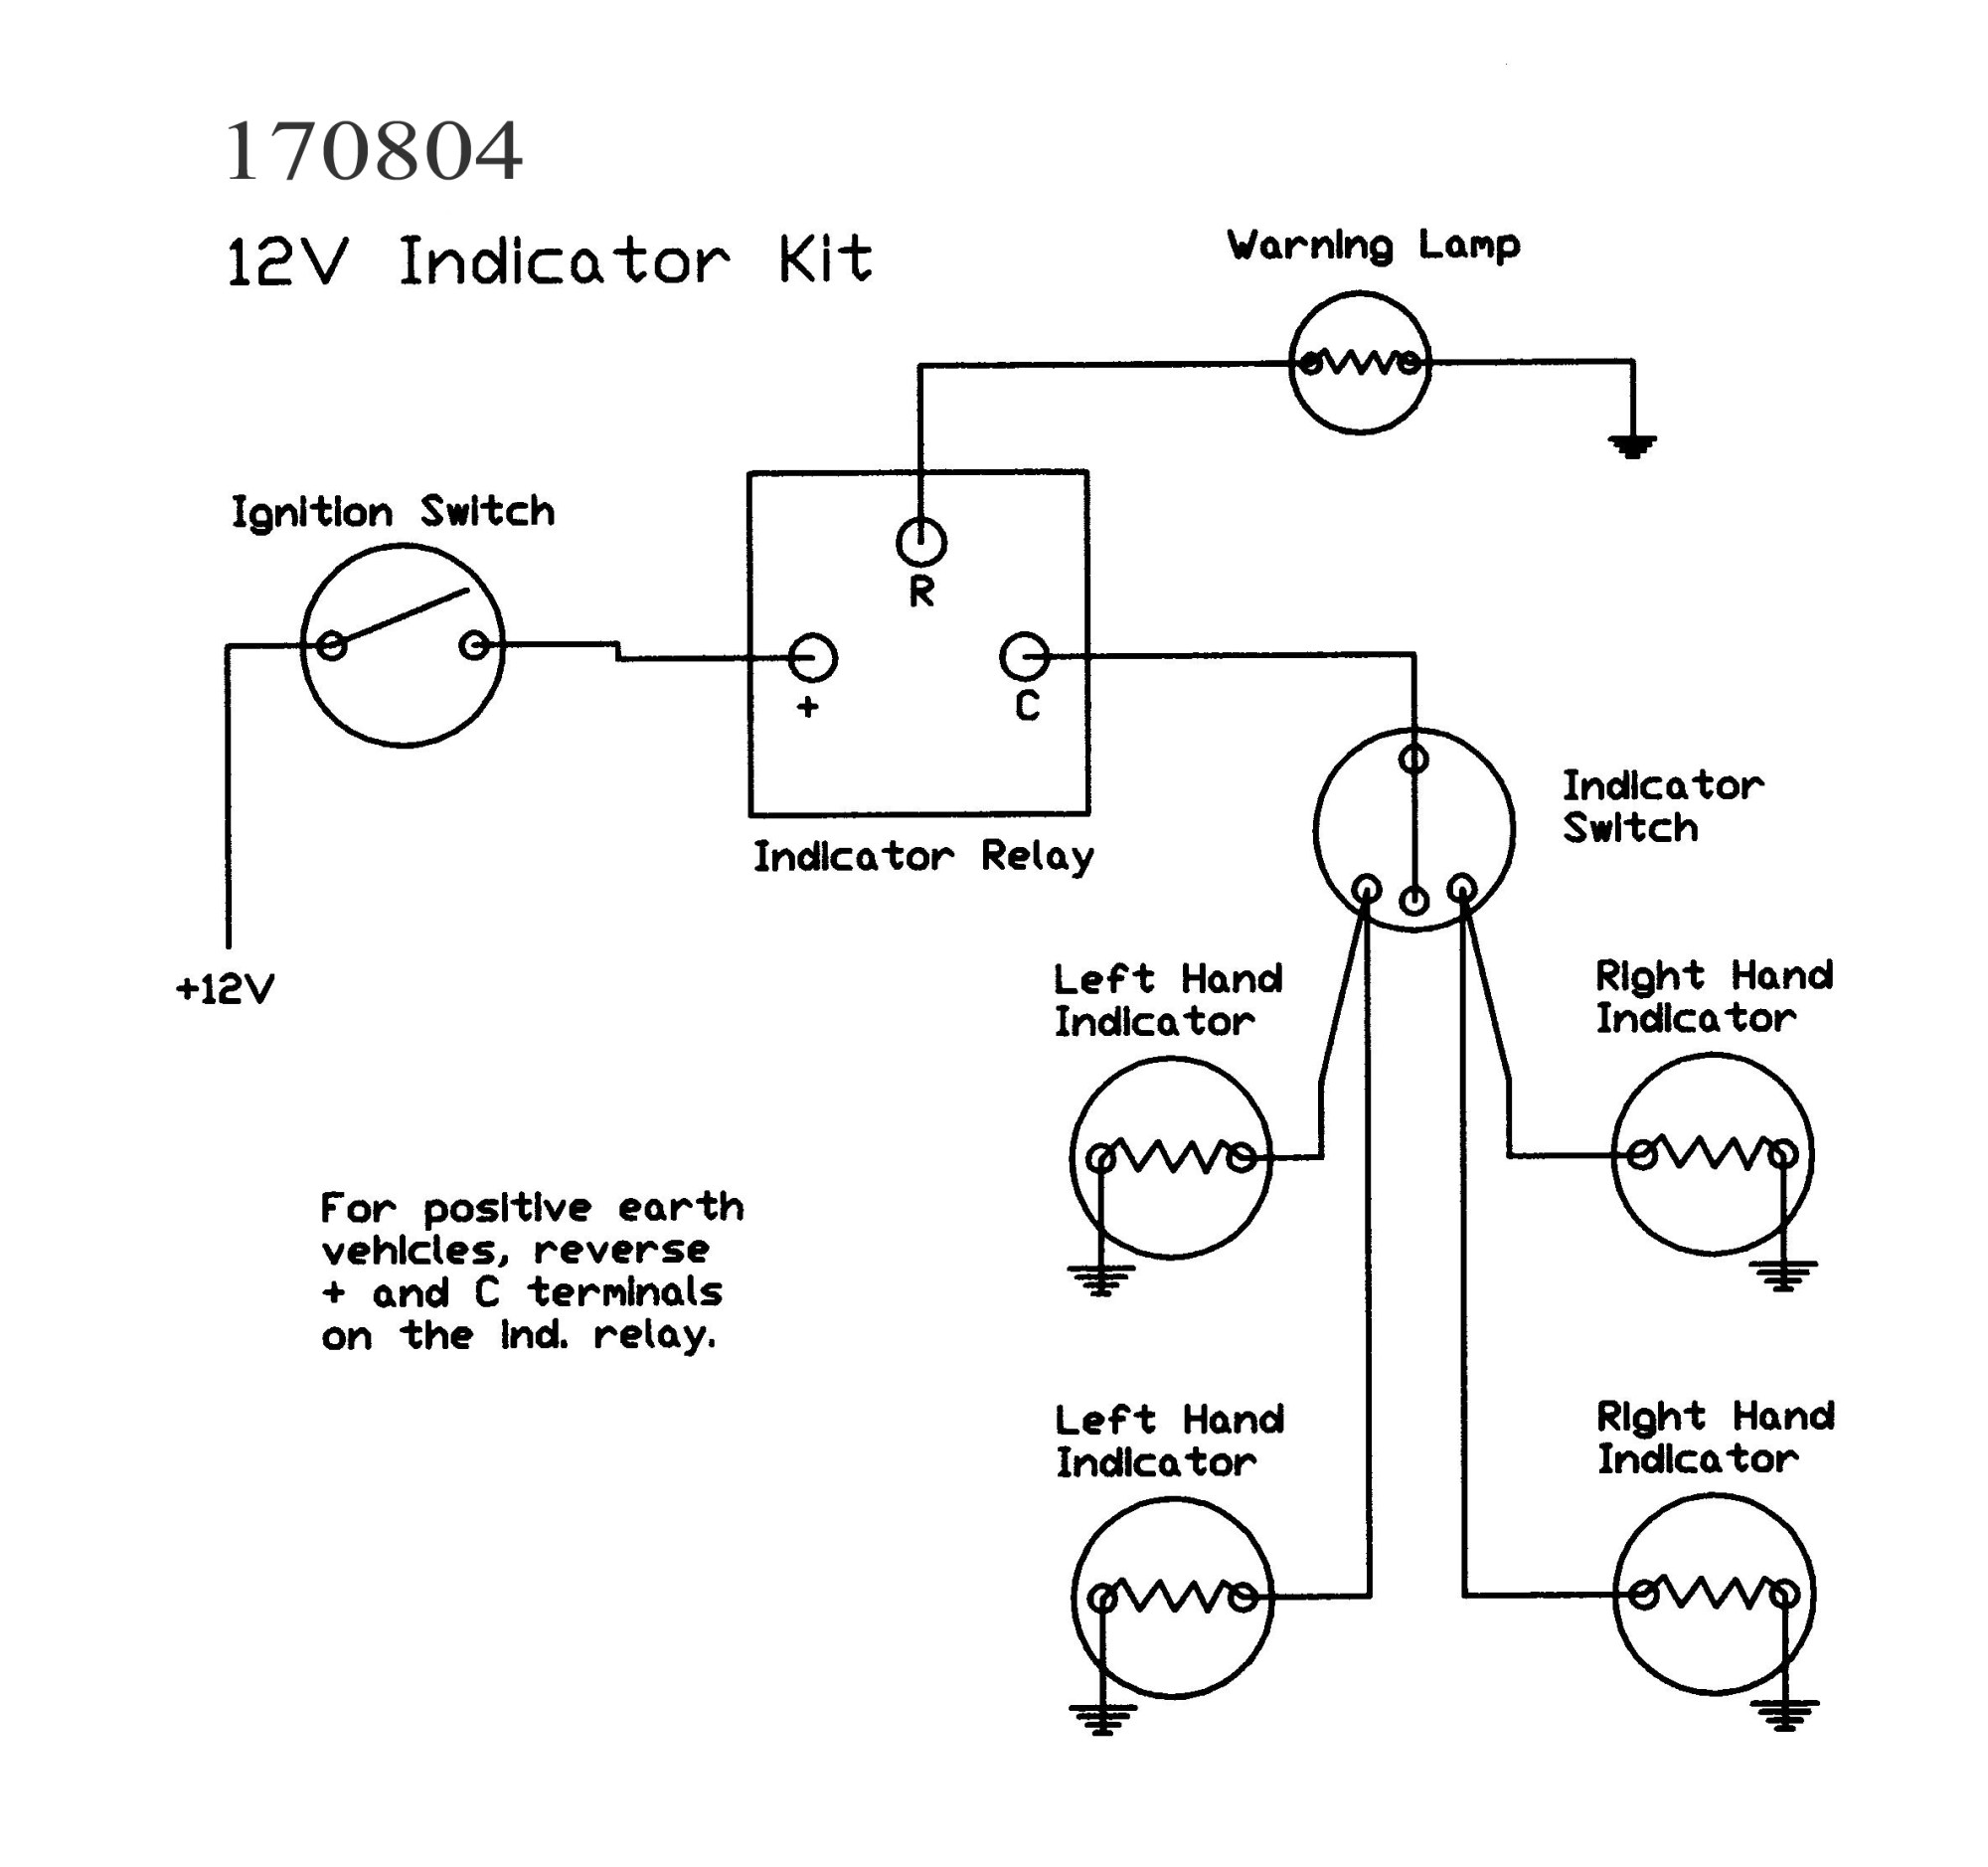 hight resolution of indicator kits without lamps wiring diagram for indicators 170803 jpg 170804 12v